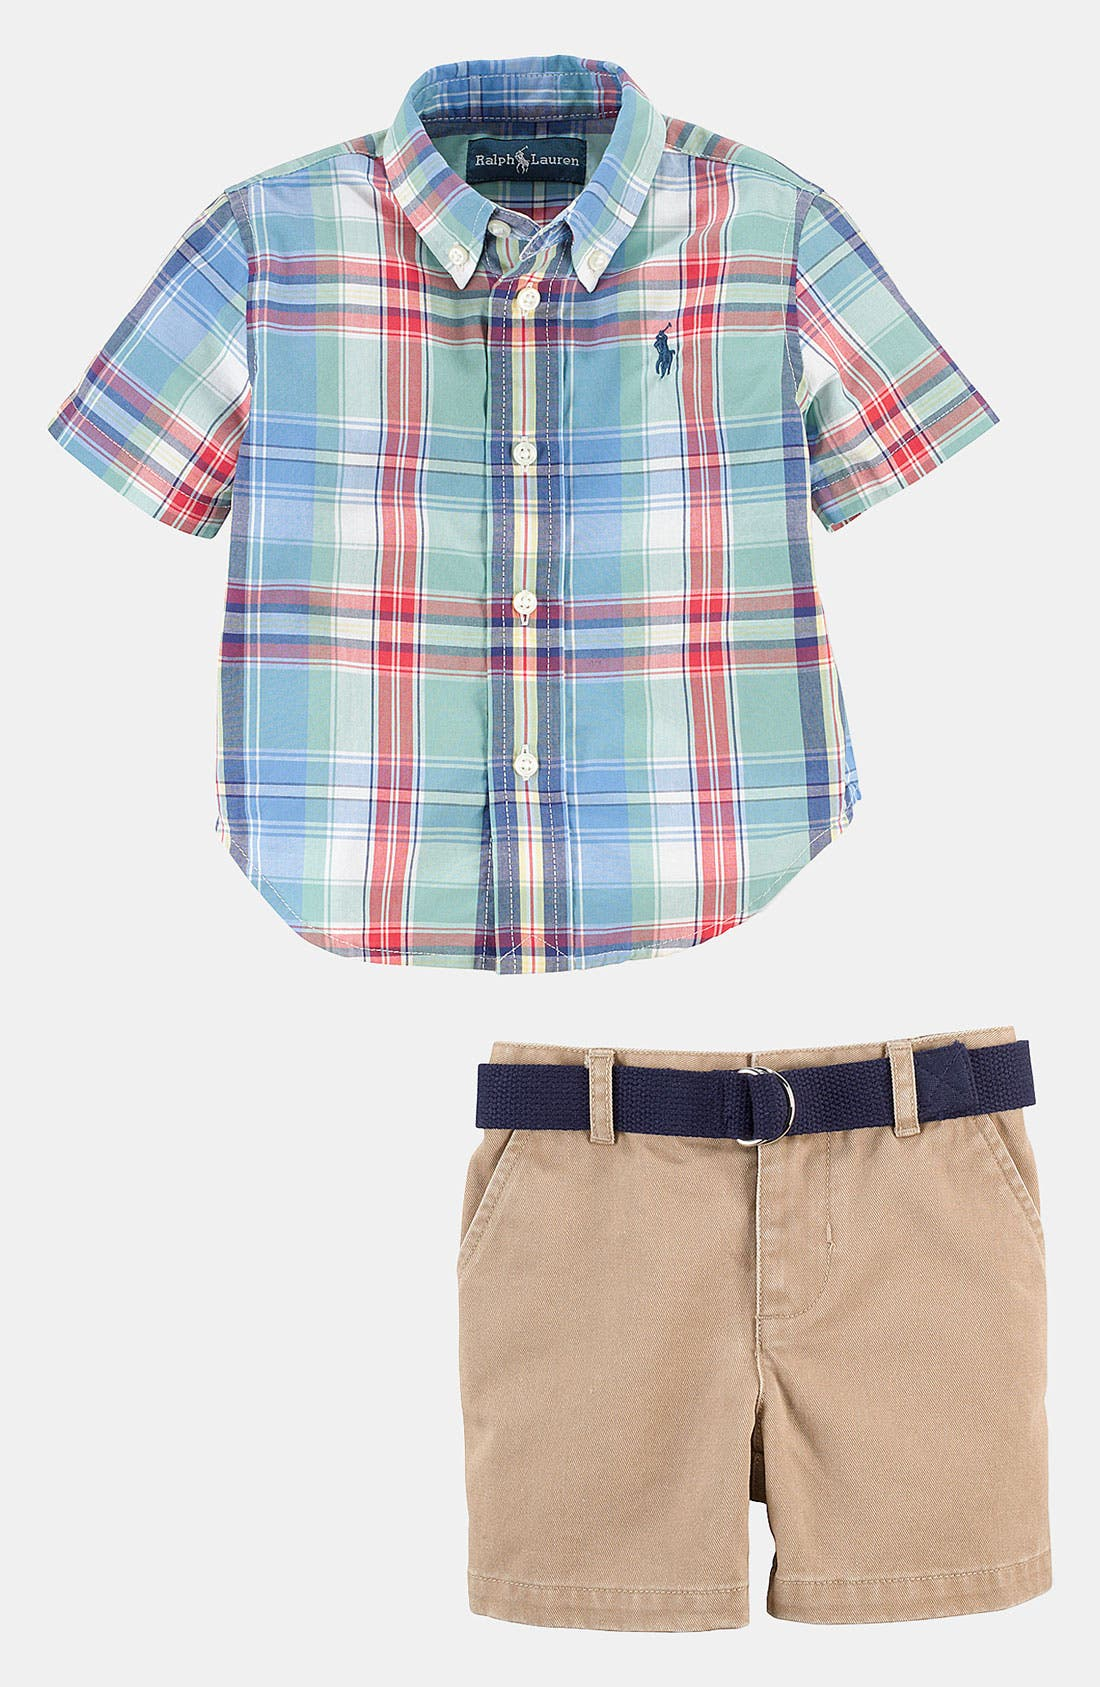 Main Image - Ralph Lauren Shirt & Shorts (Baby)